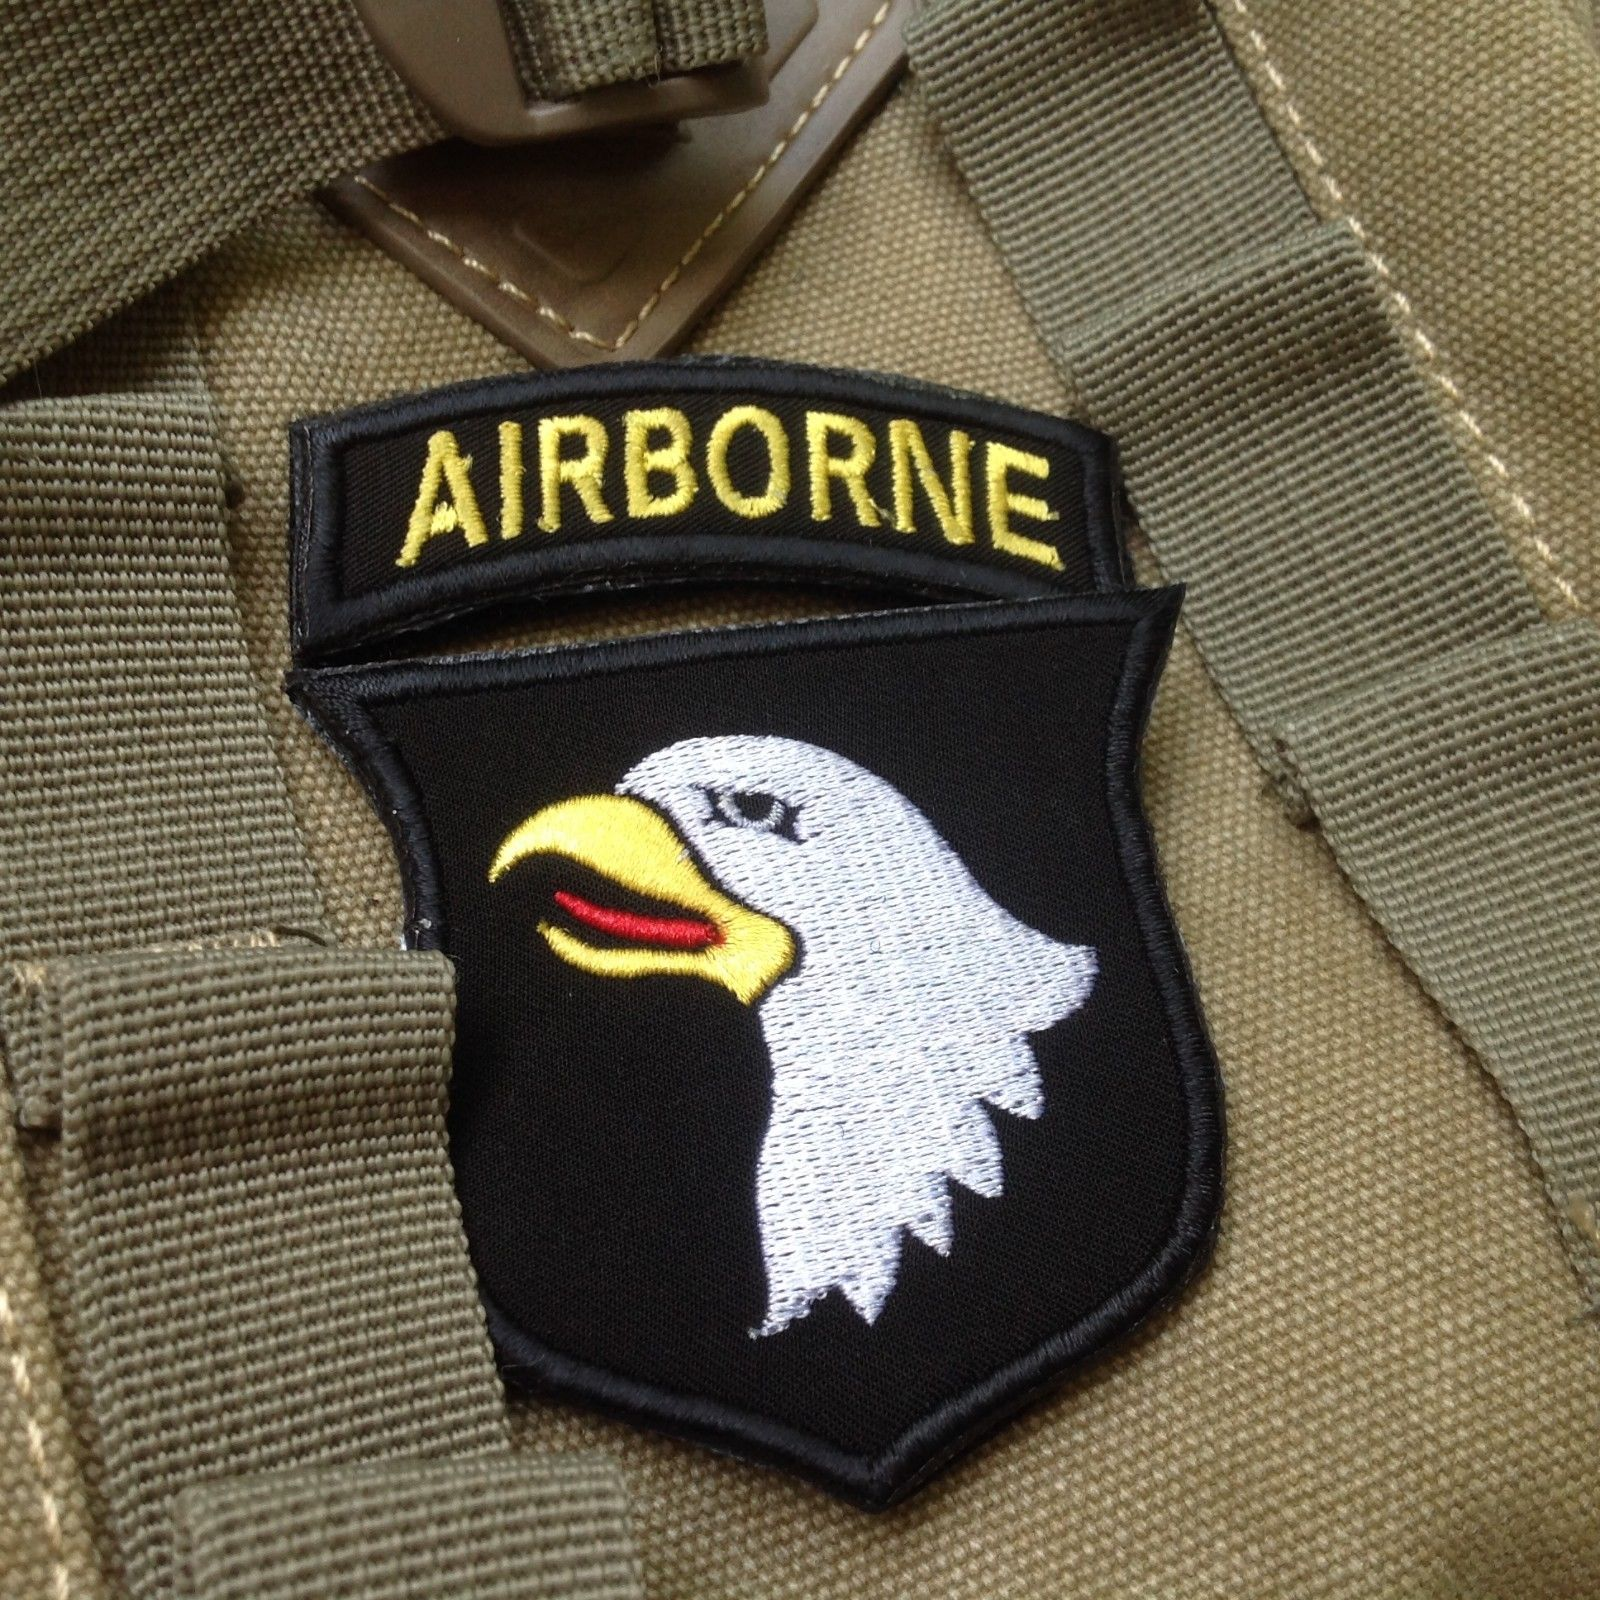 USA AIRBORNE Patch 101st Airborne Division 3D Embroidered Magic Sticker Hook&Loop Patch Badge Military Sticker